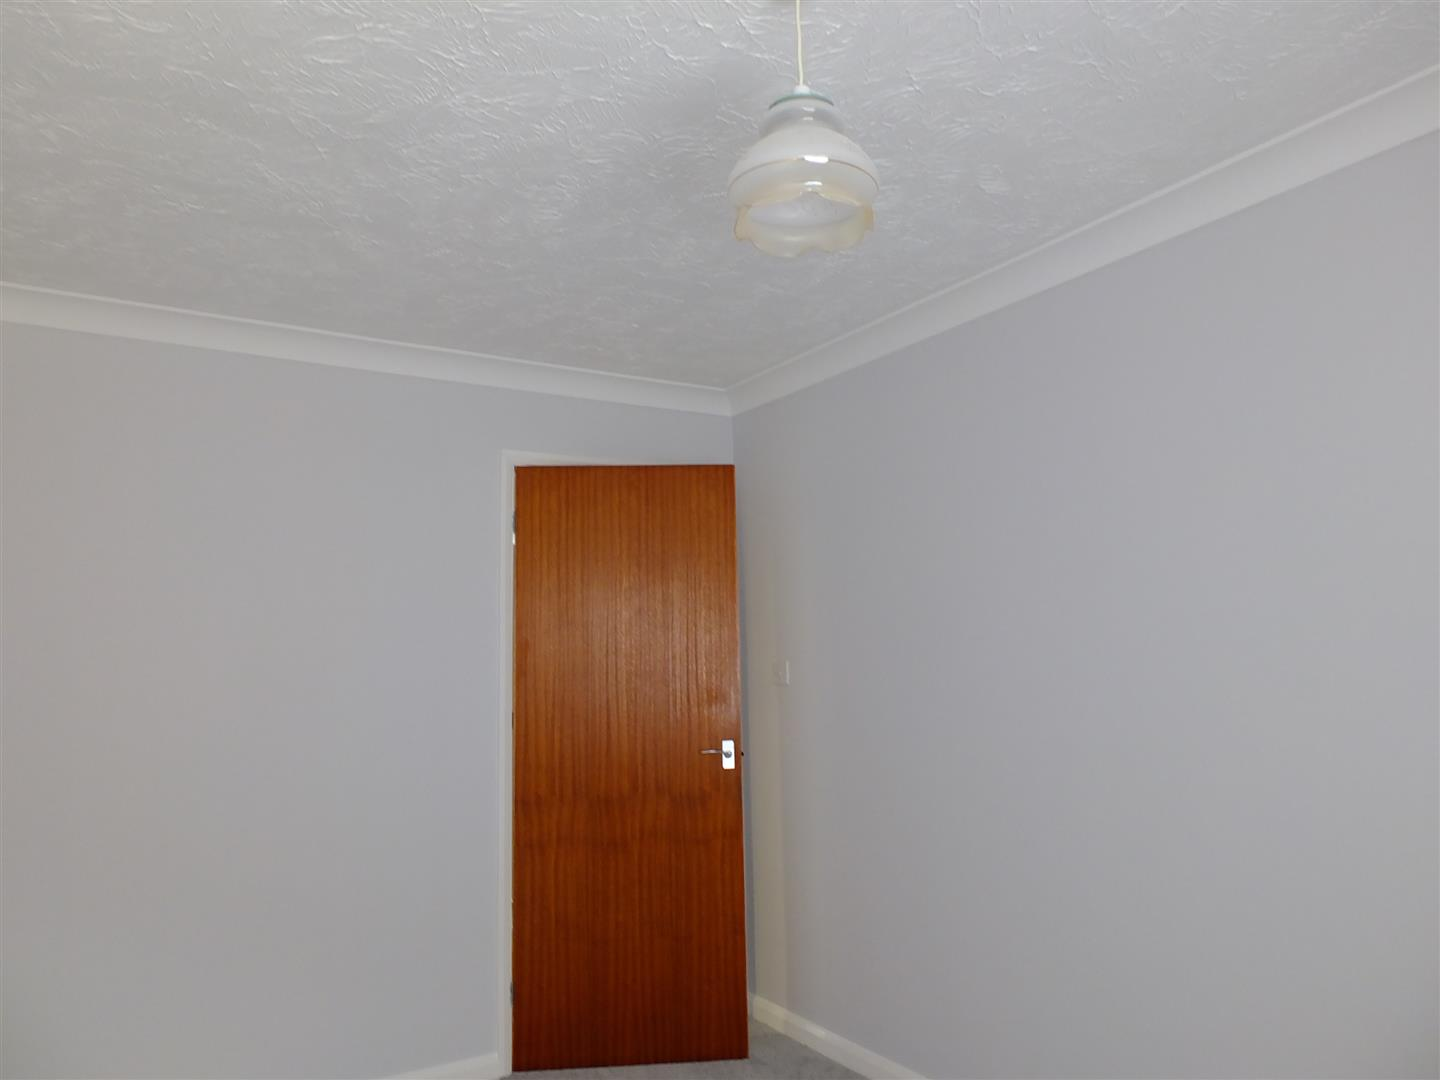 3 bed house to rent in Long Sutton Spalding, PE12 9LZ  - Property Image 18